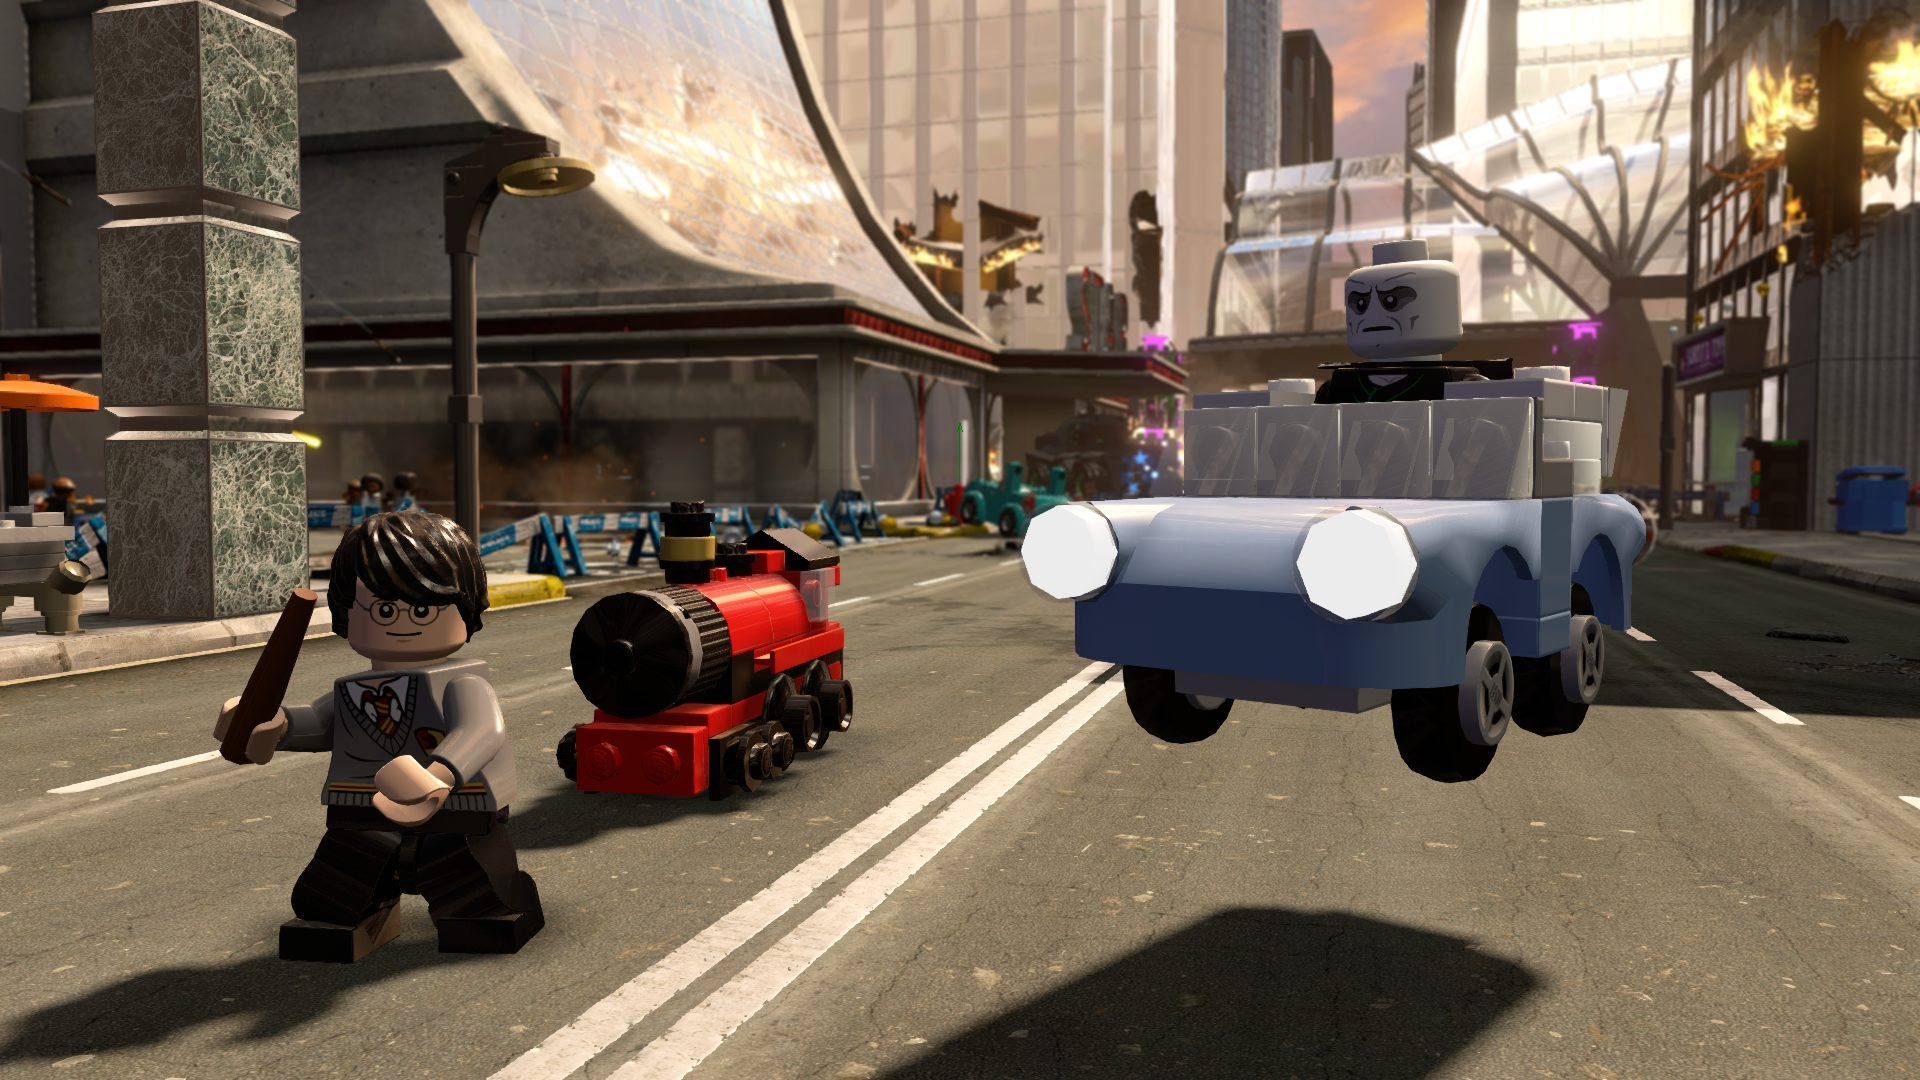 LEGO Dimensions Gets Even Bigger with New Expansion Packs Based on Ghostbusters, Adventure Time, Mission Impossible, Harry Potter and The A-Team